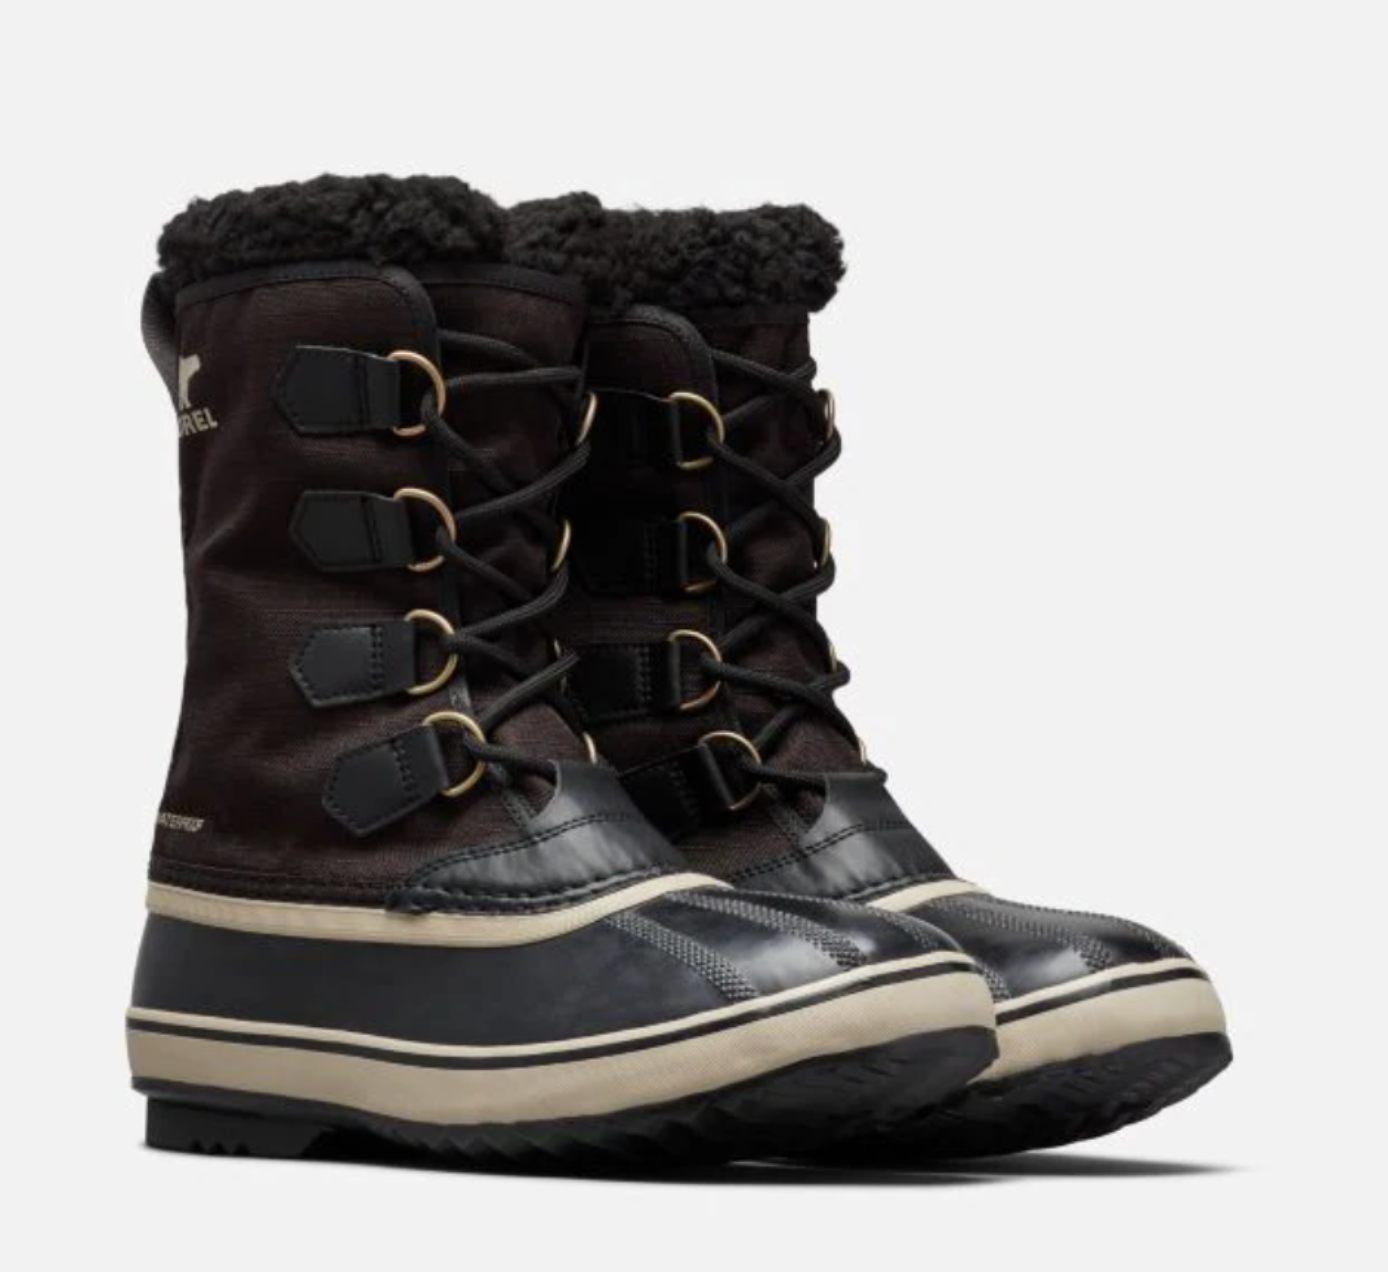 SOREL-1964 PAC NYLON